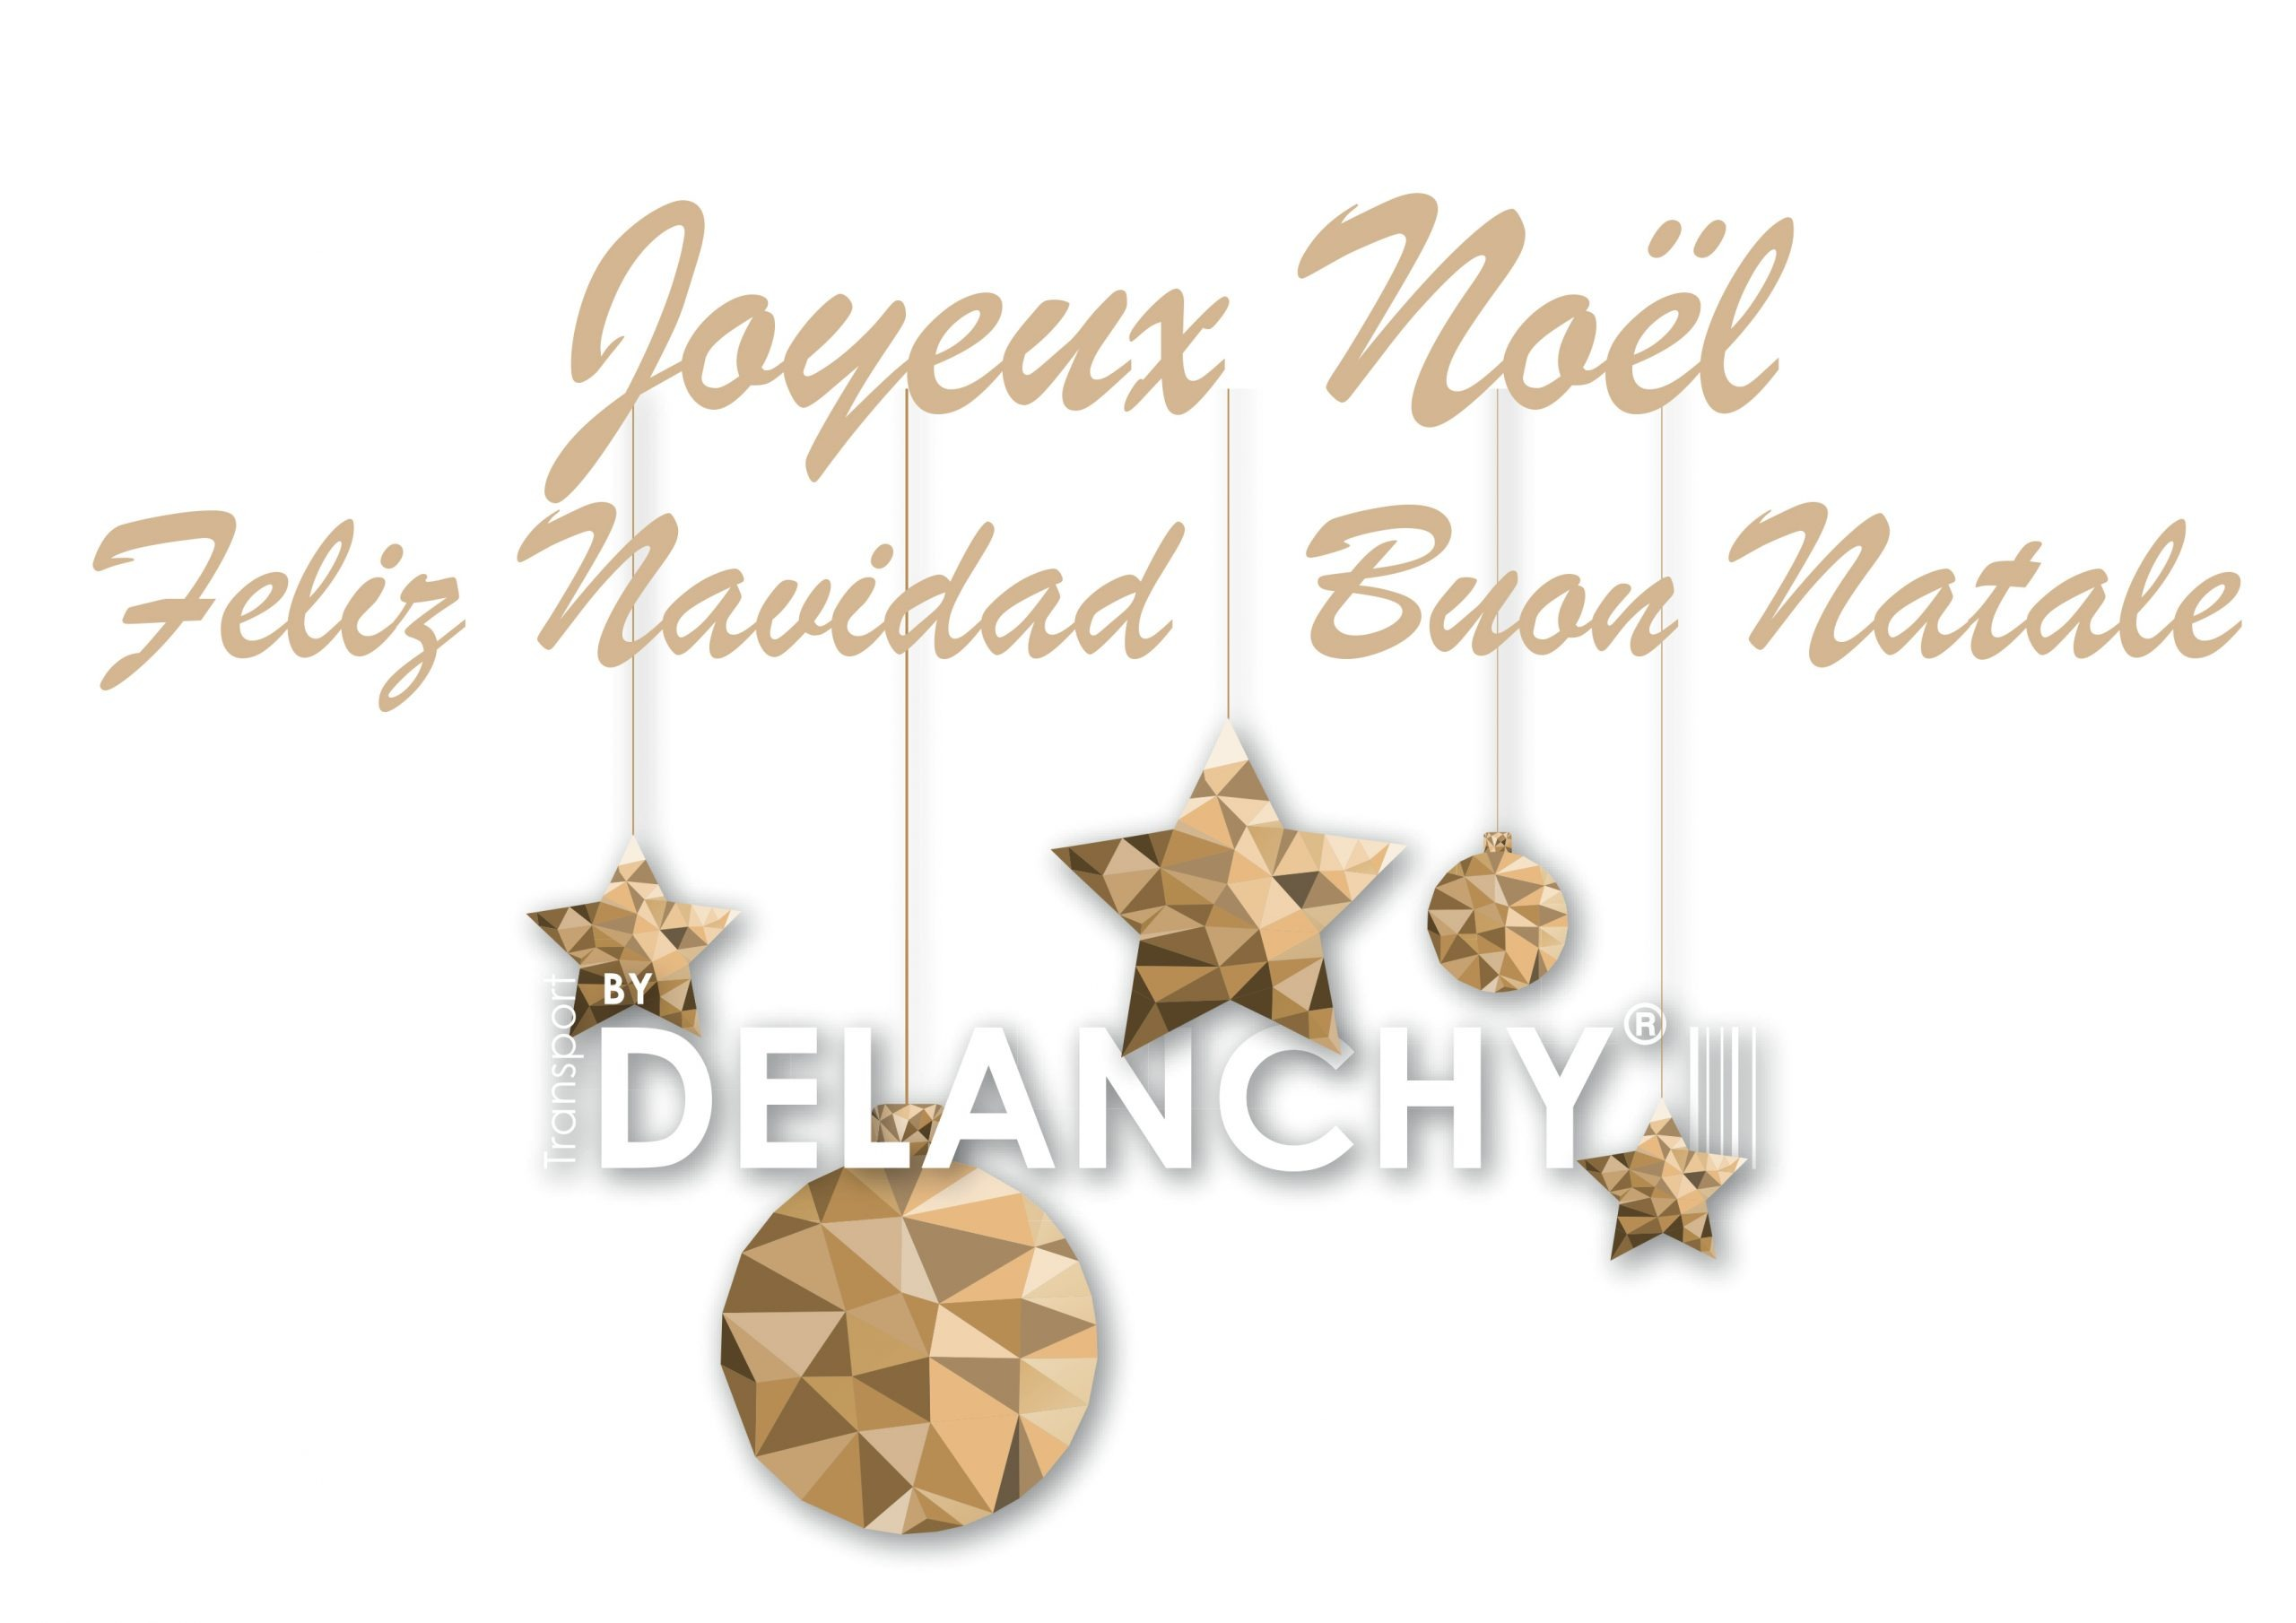 The DELANCHY Group wishes you all a Happy Holiday Season.